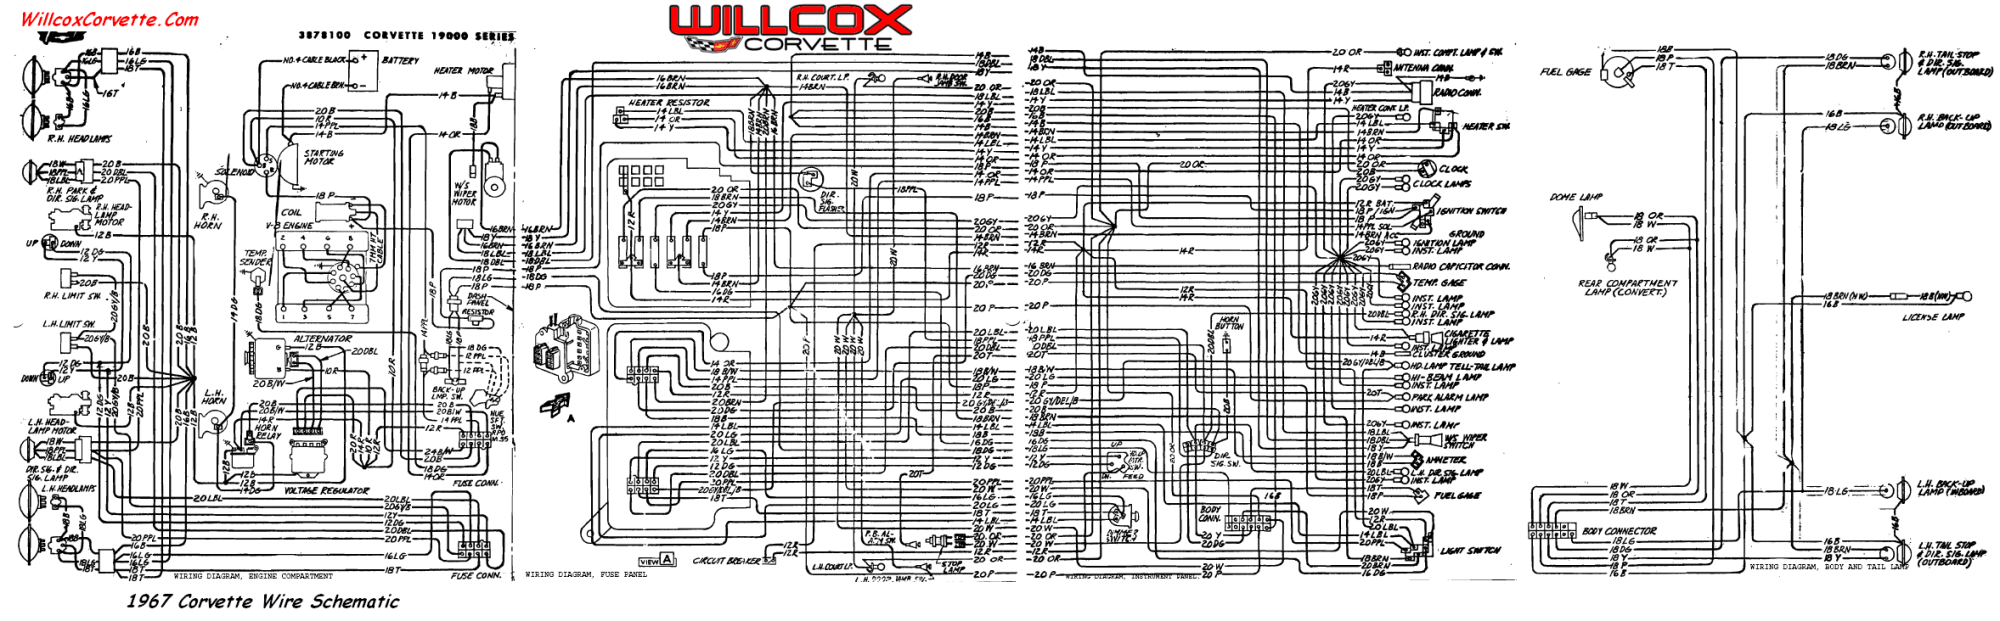 hight resolution of 1978 corvette wiring diagram wiring diagram mega1978 corvette wiring schematic wiring diagram perfomance 1978 corvette horn